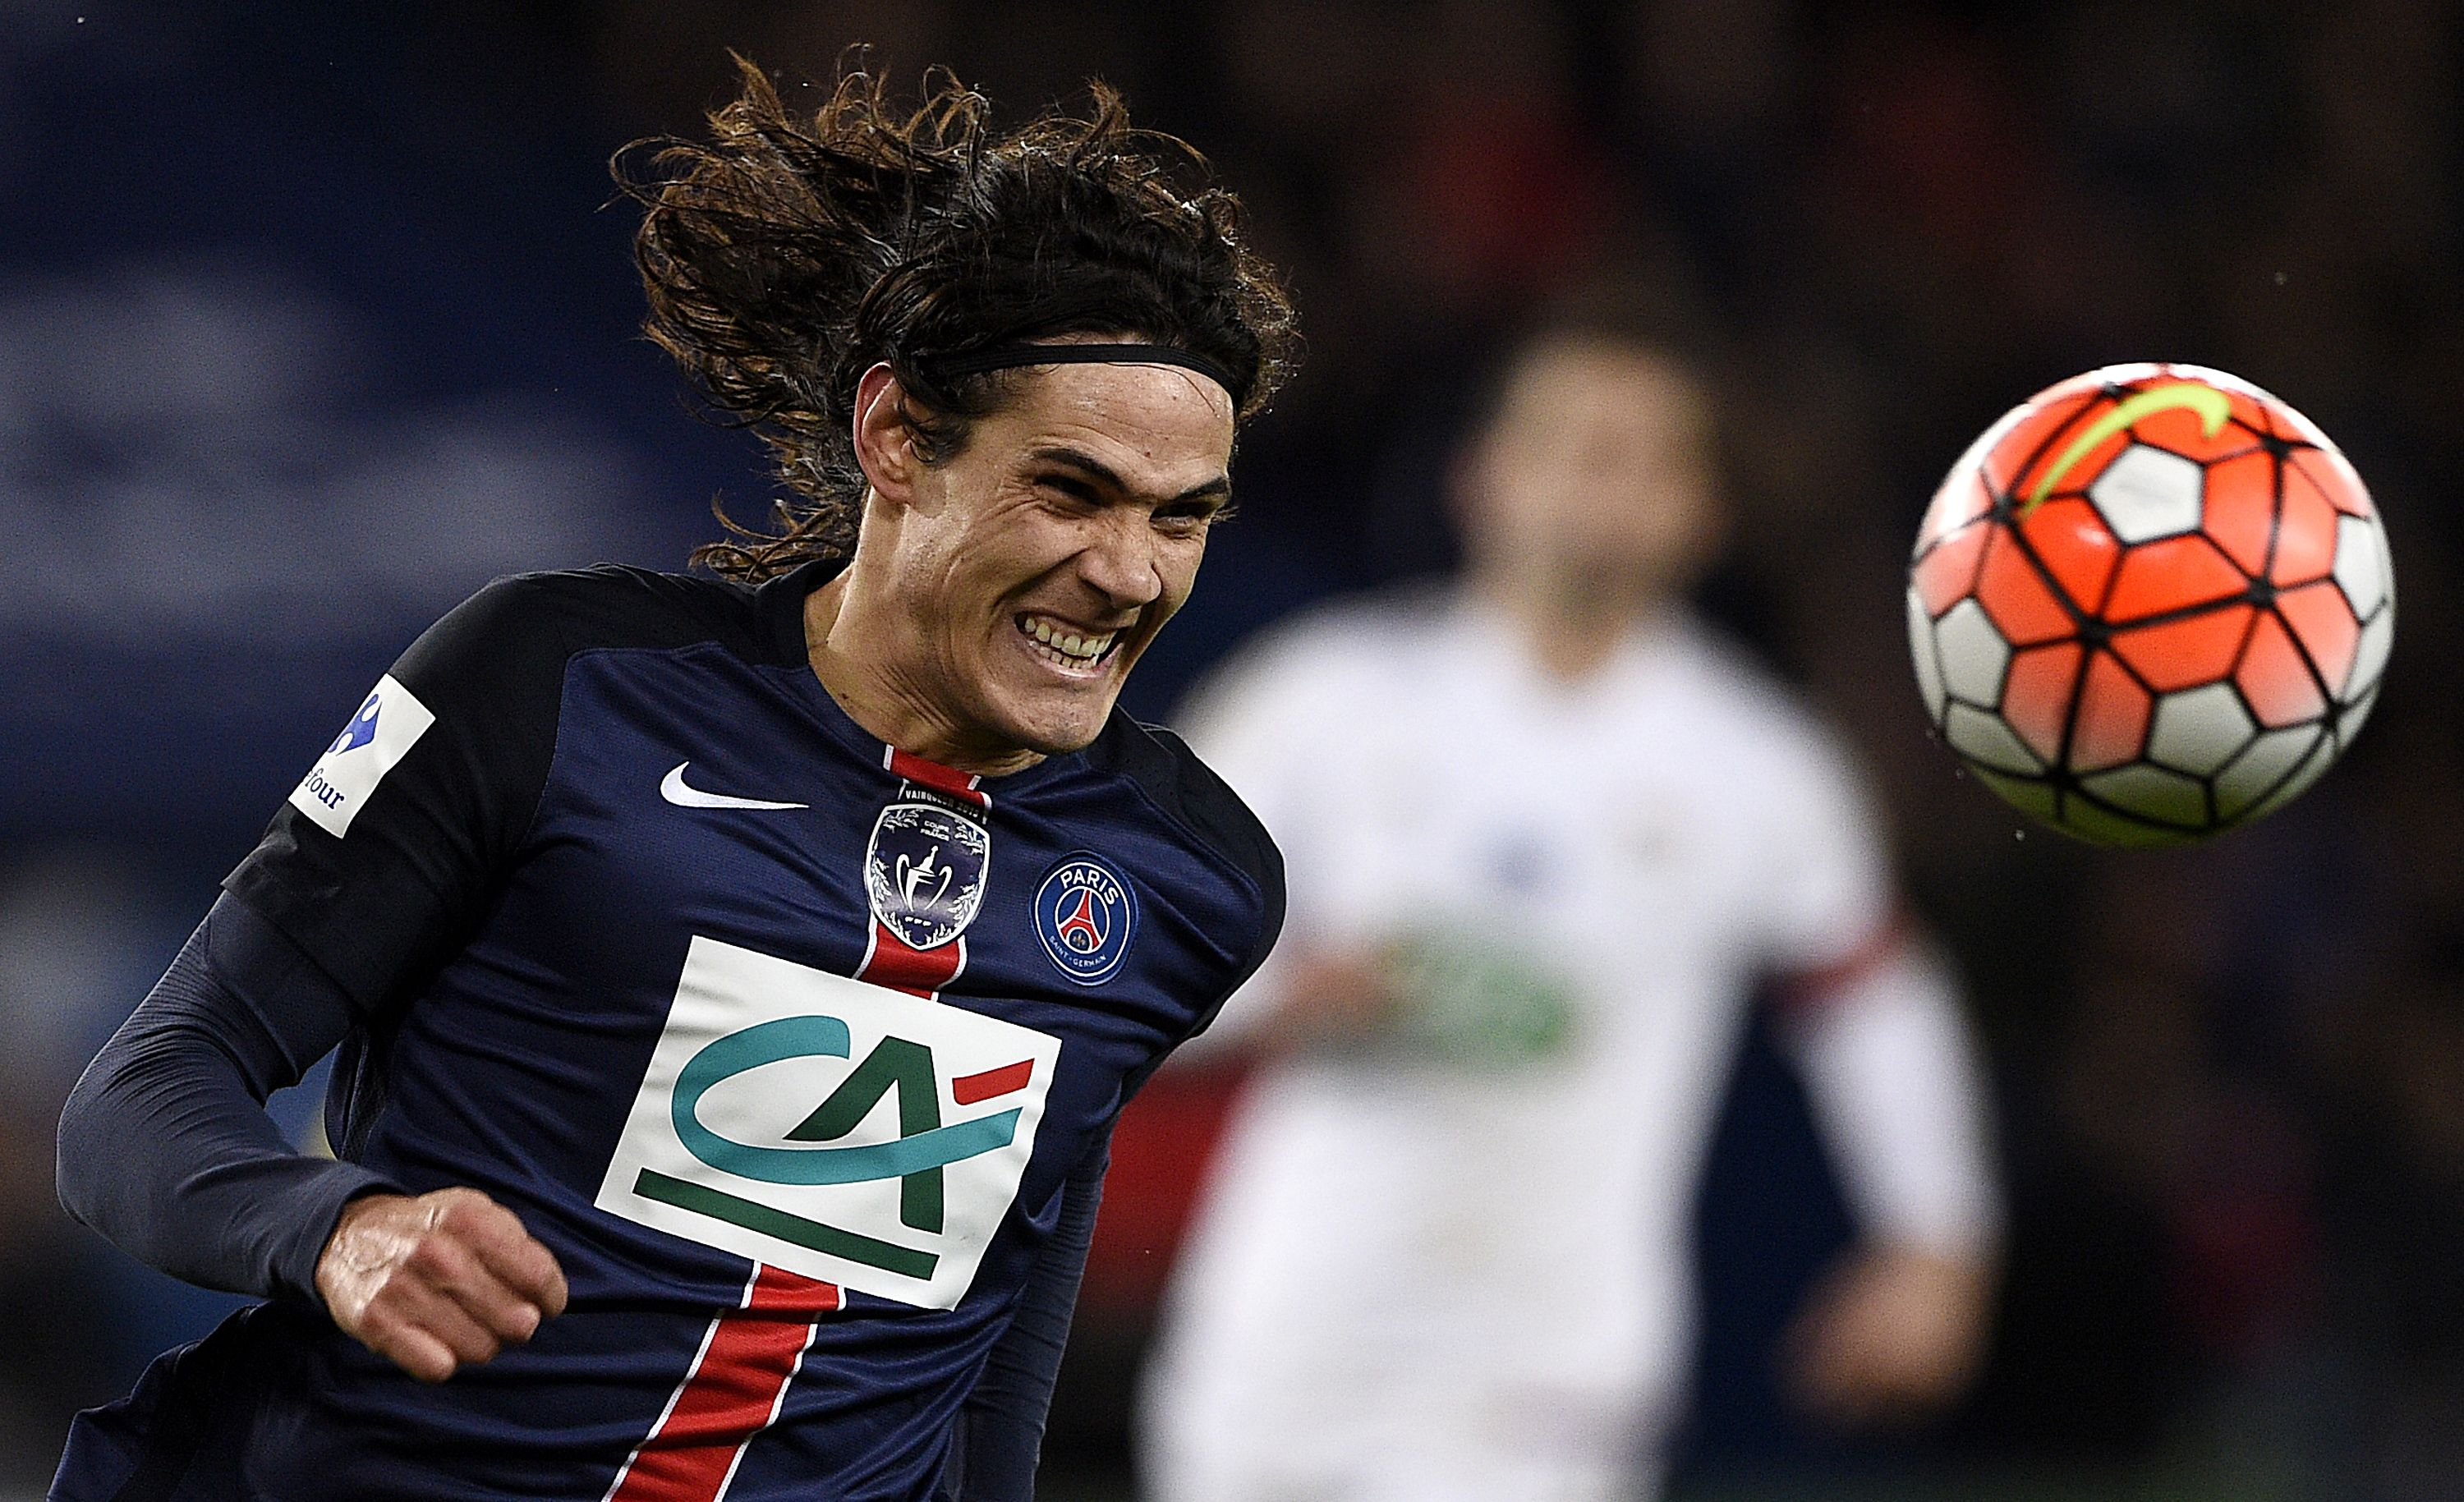 Chelsea, PSG, Paris Saint Germain, Chelsea psg, Chelsea lineup, PSG lineup, paris saint germain lineup, line up, today, starting lineup today, stream, online, channel, when, time, watch, free, live